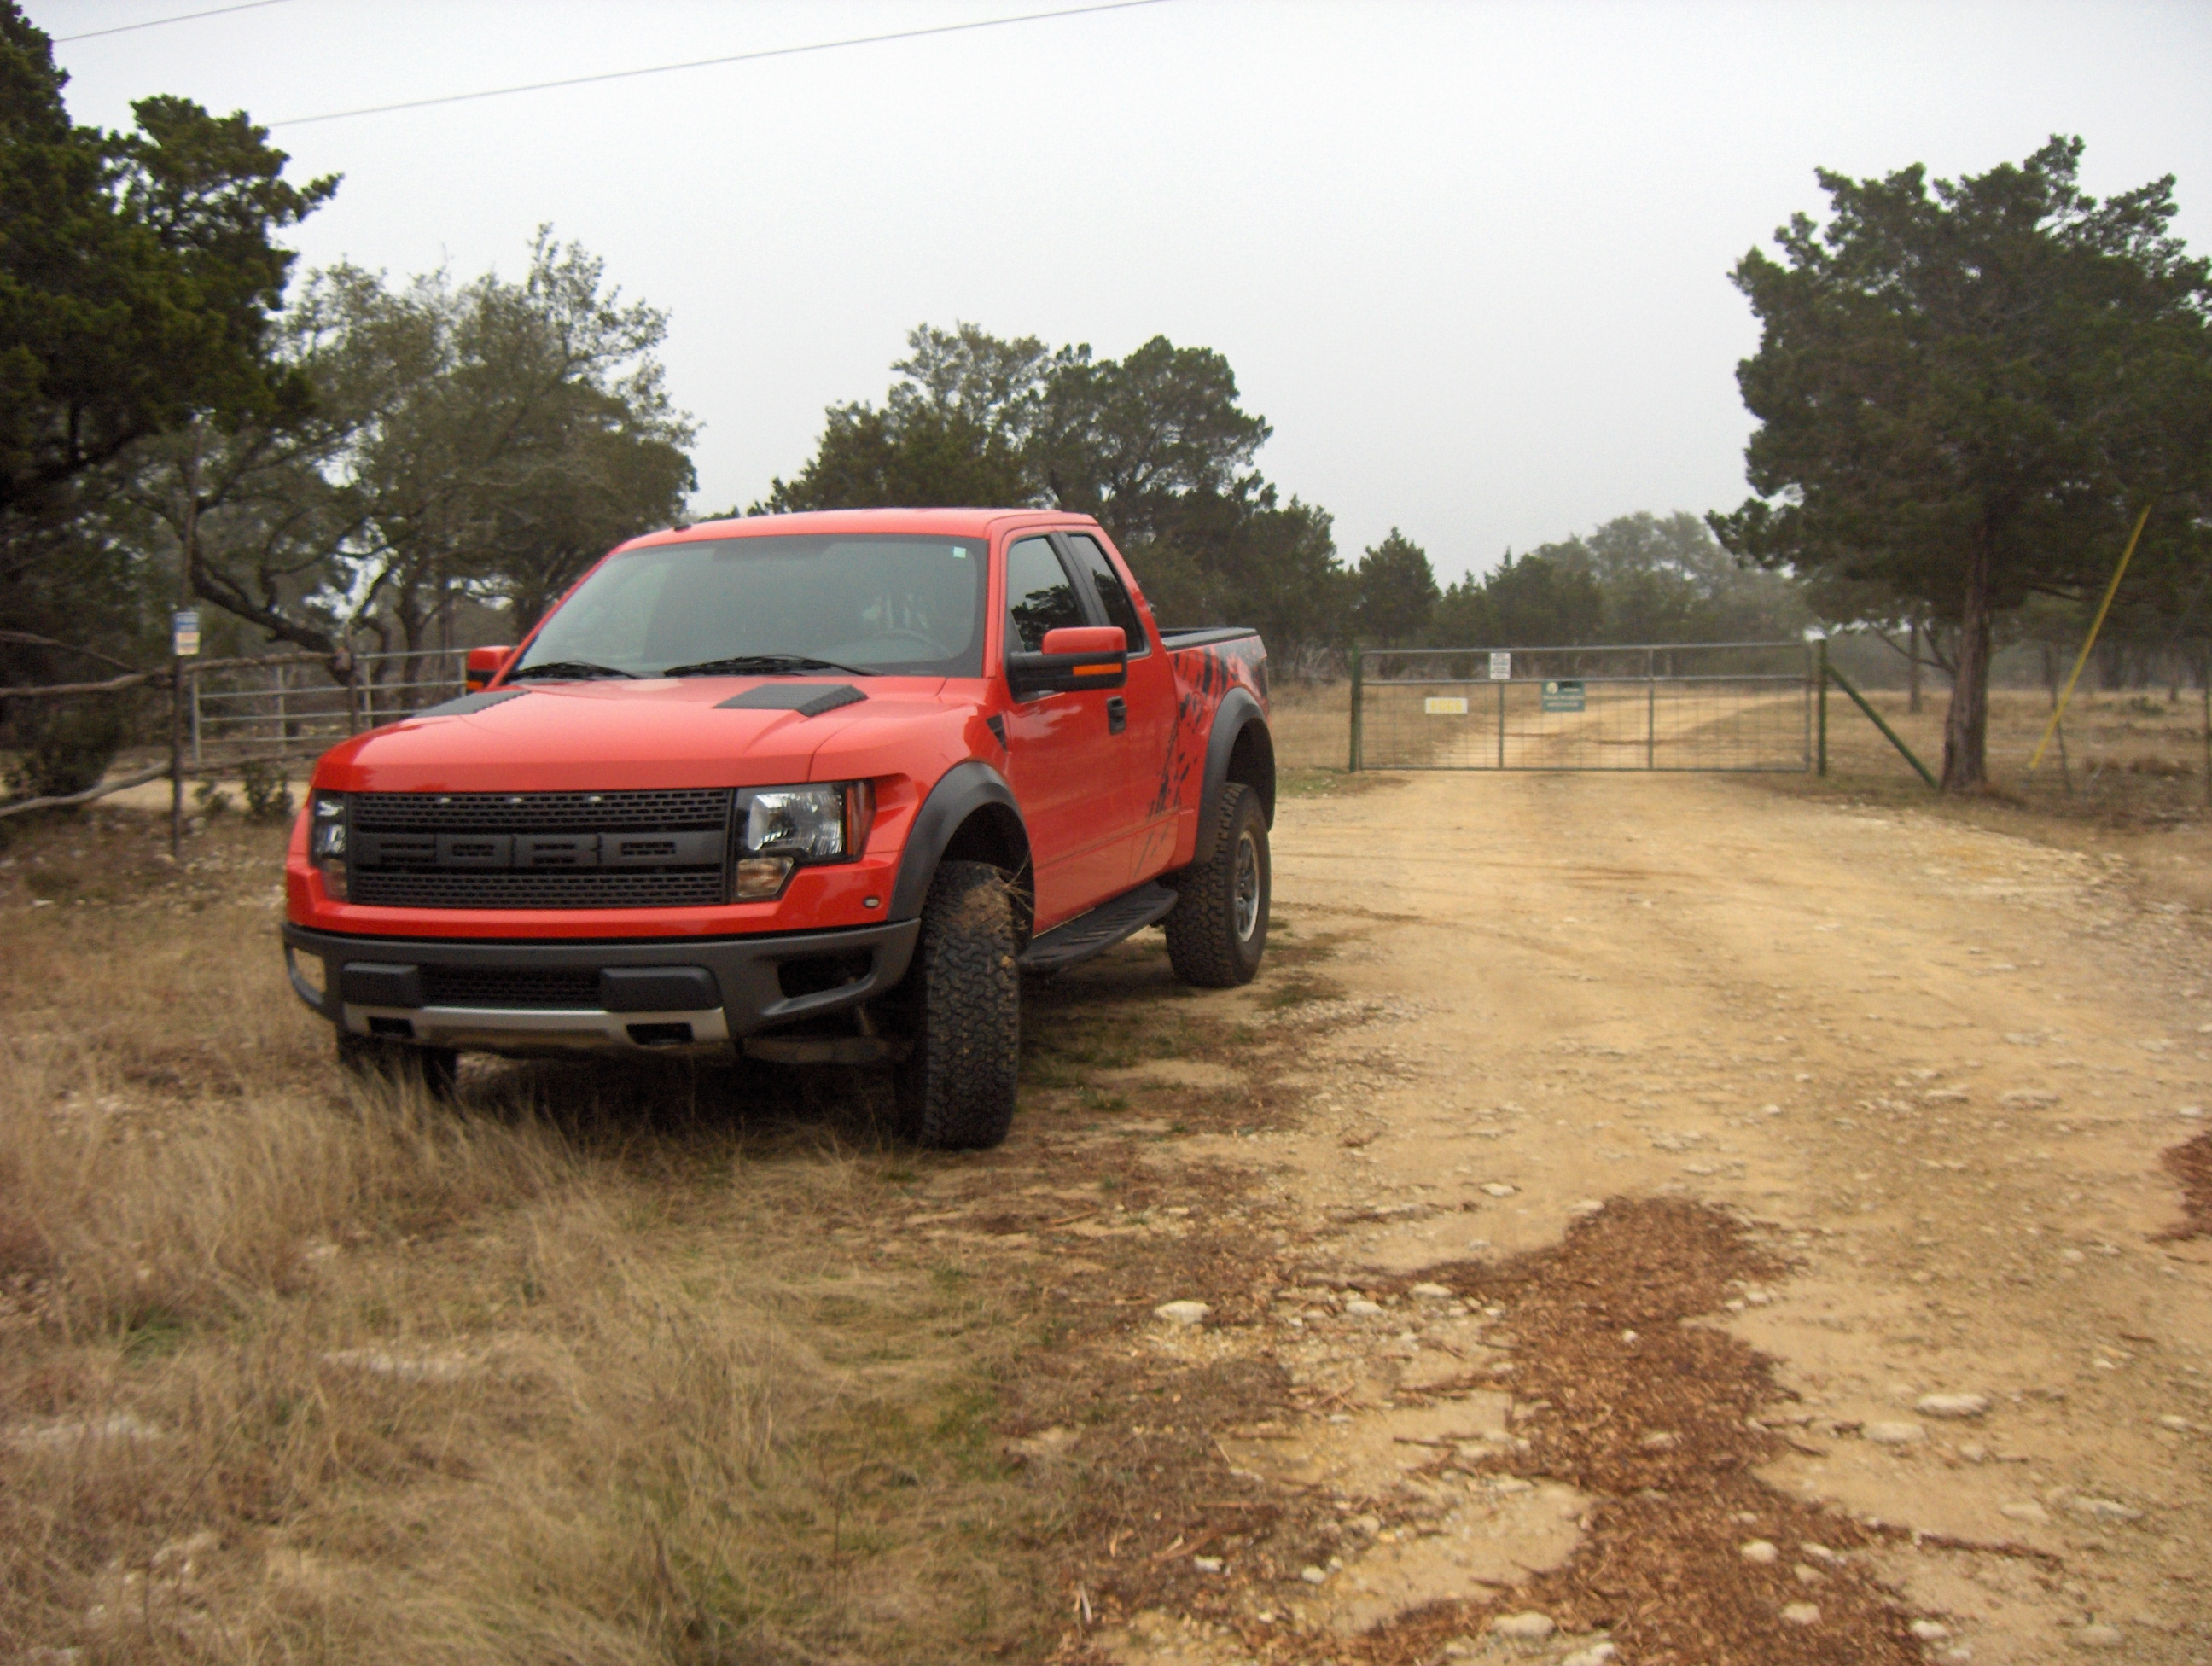 2010 Ford F-150 SVT Raptor Review, Take Two - Autosavant | Autosavant